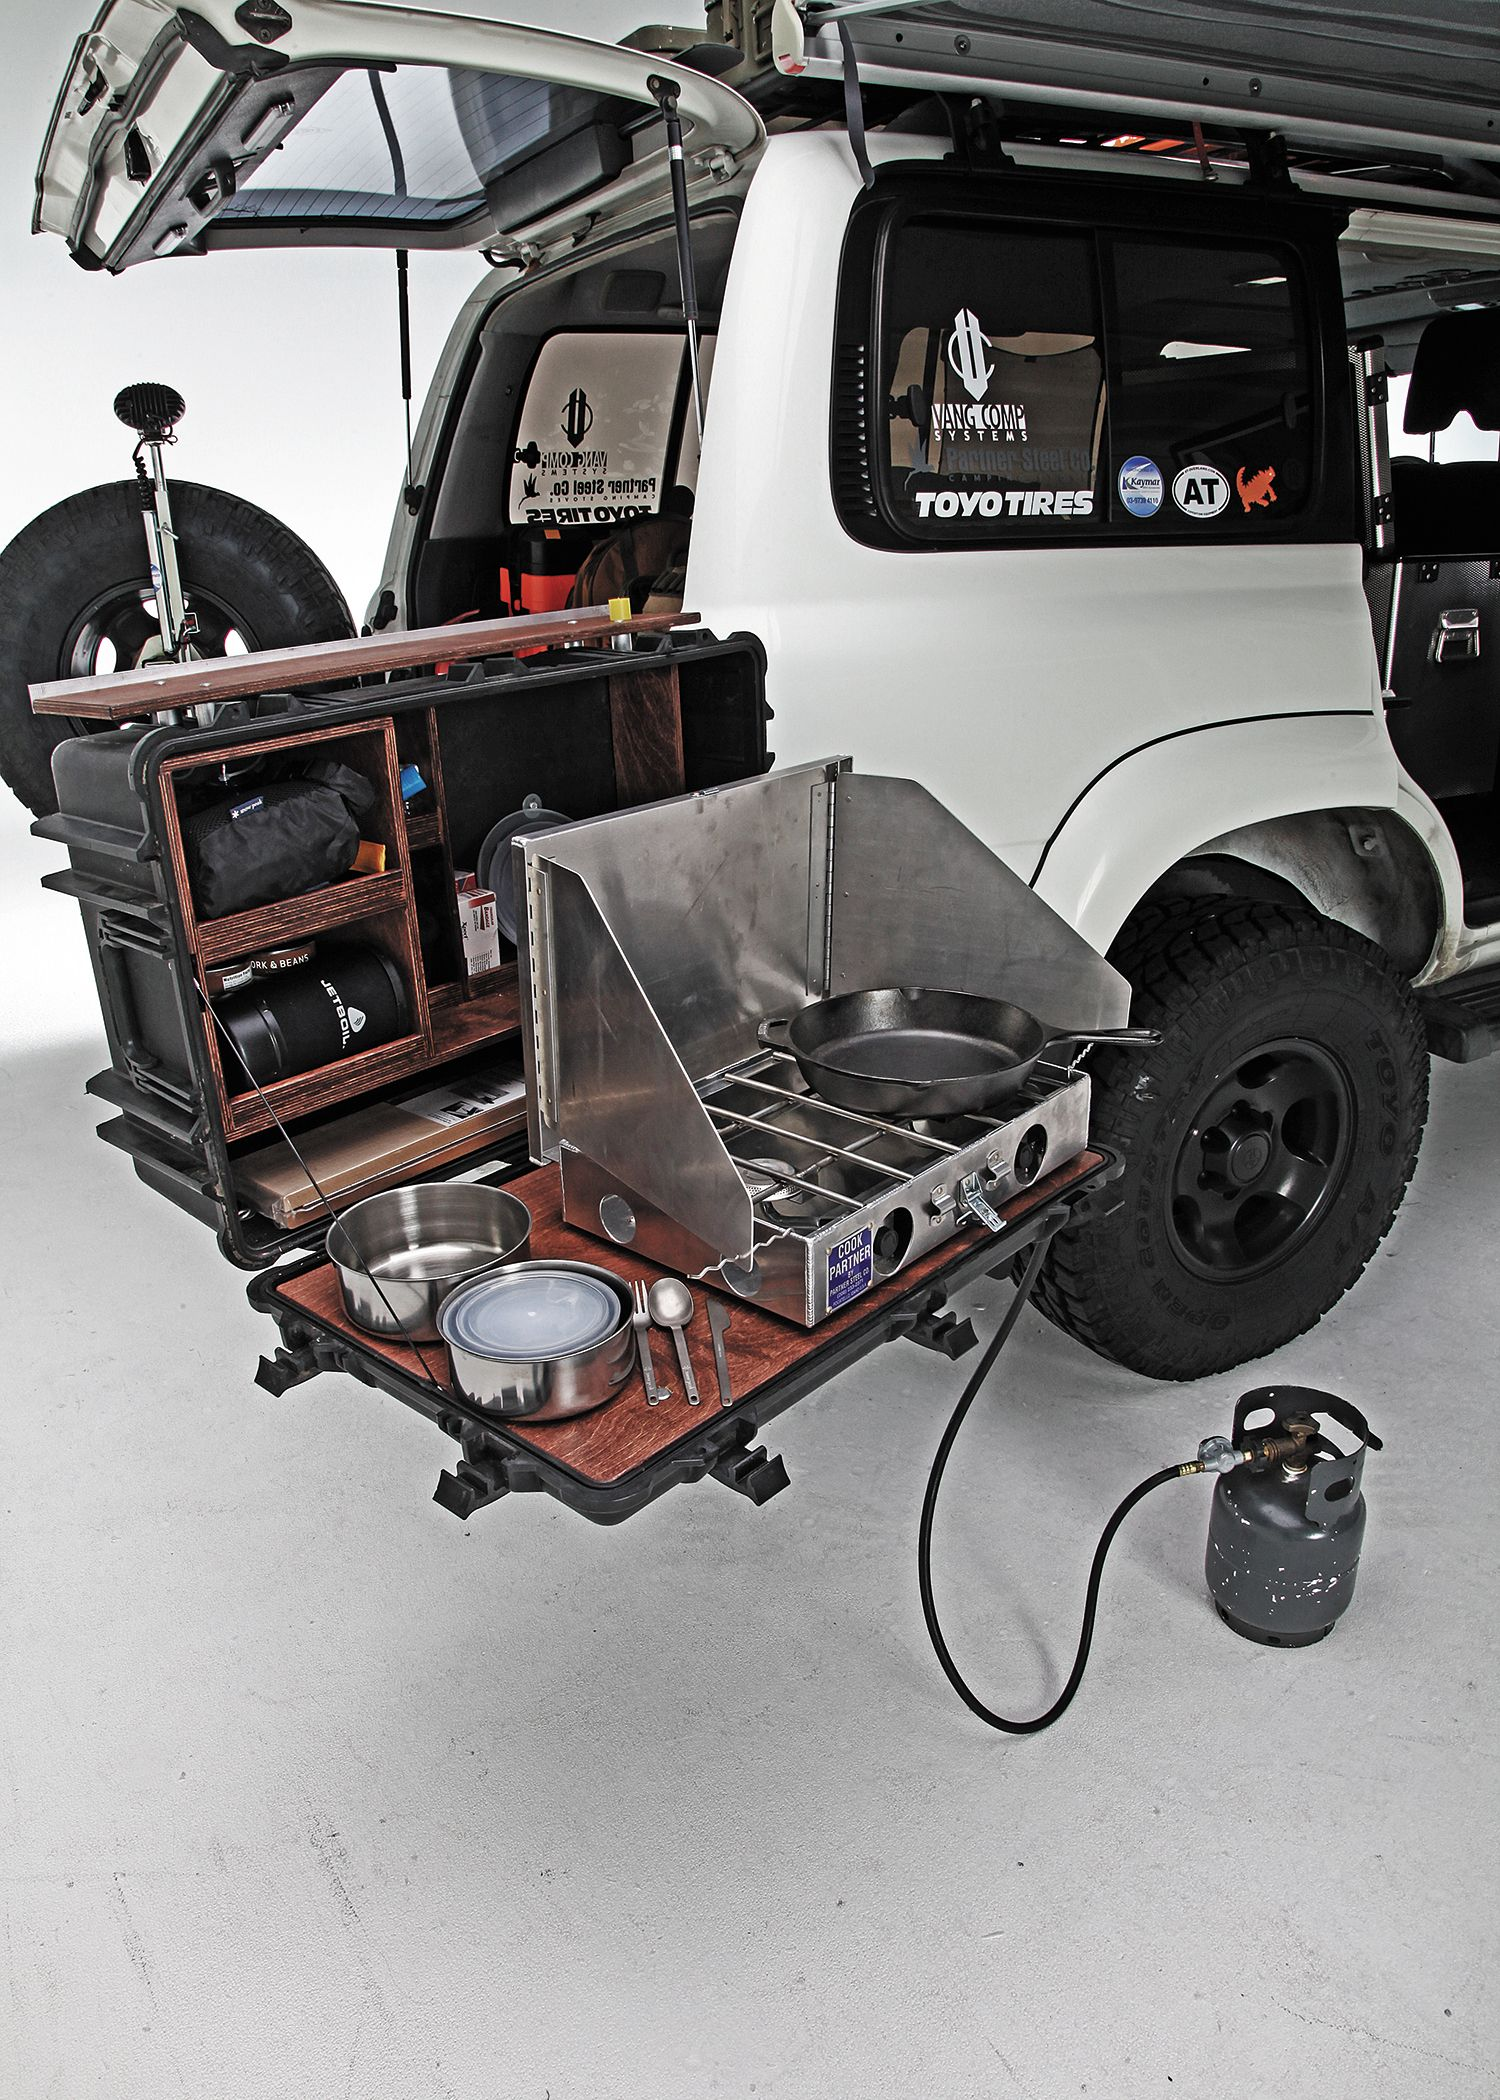 1994 Toyota Land Cruiser Fold Out Table With Cooking